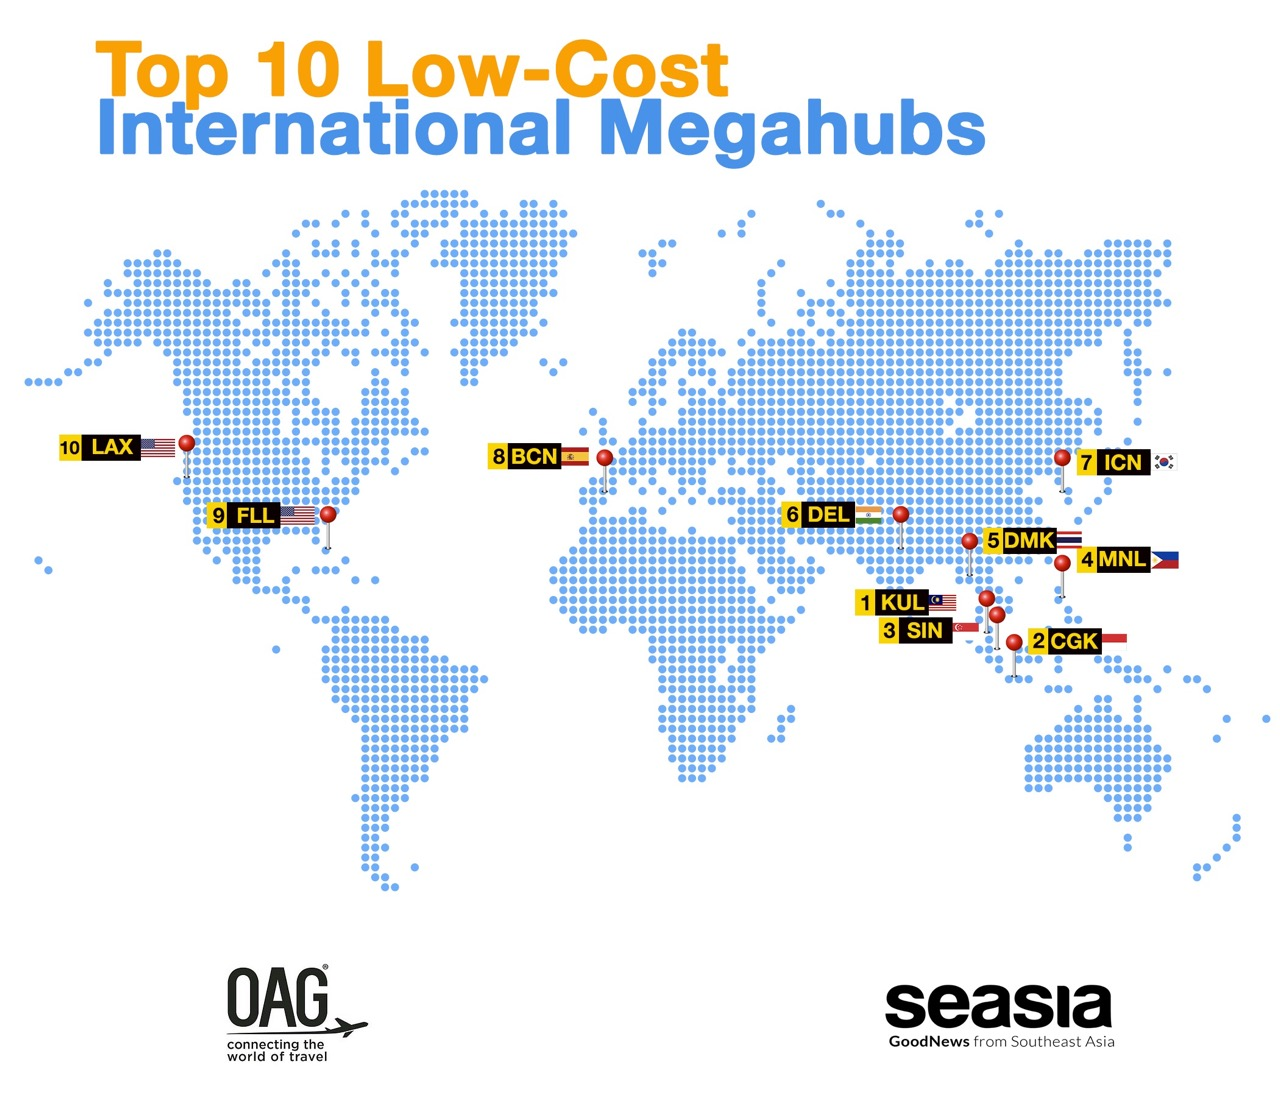 With airports and airlines themselves facilitating international connections more and more between low-cost flights, we have compiled the top 25 Megahubs for low-cost connections which include the same or different low-cost carriers.